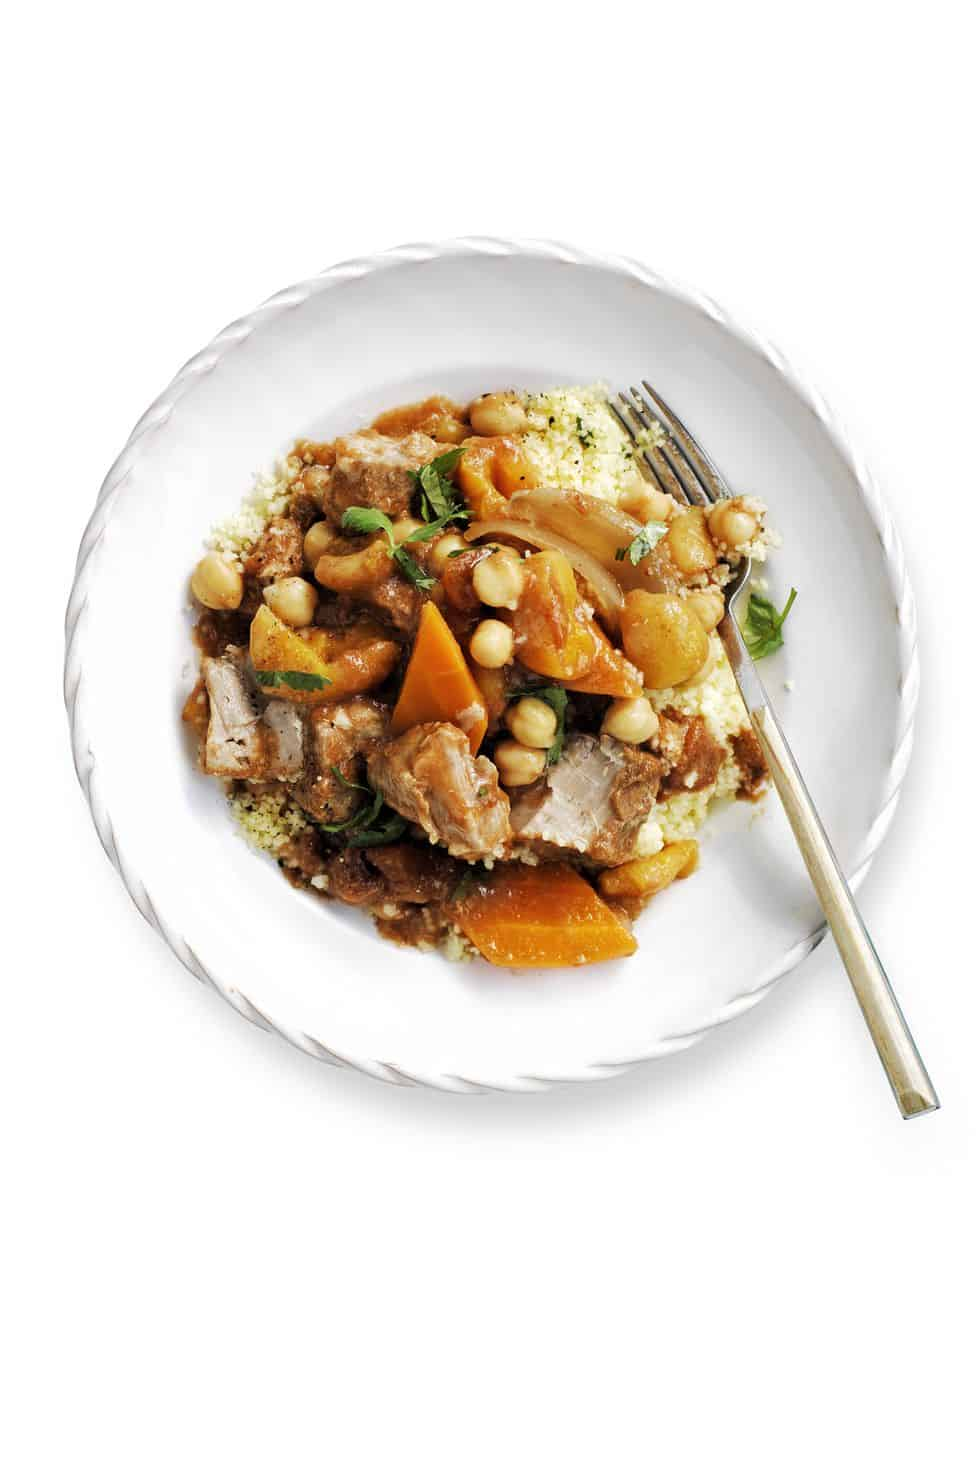 Pork, carrot, and chickpea stew